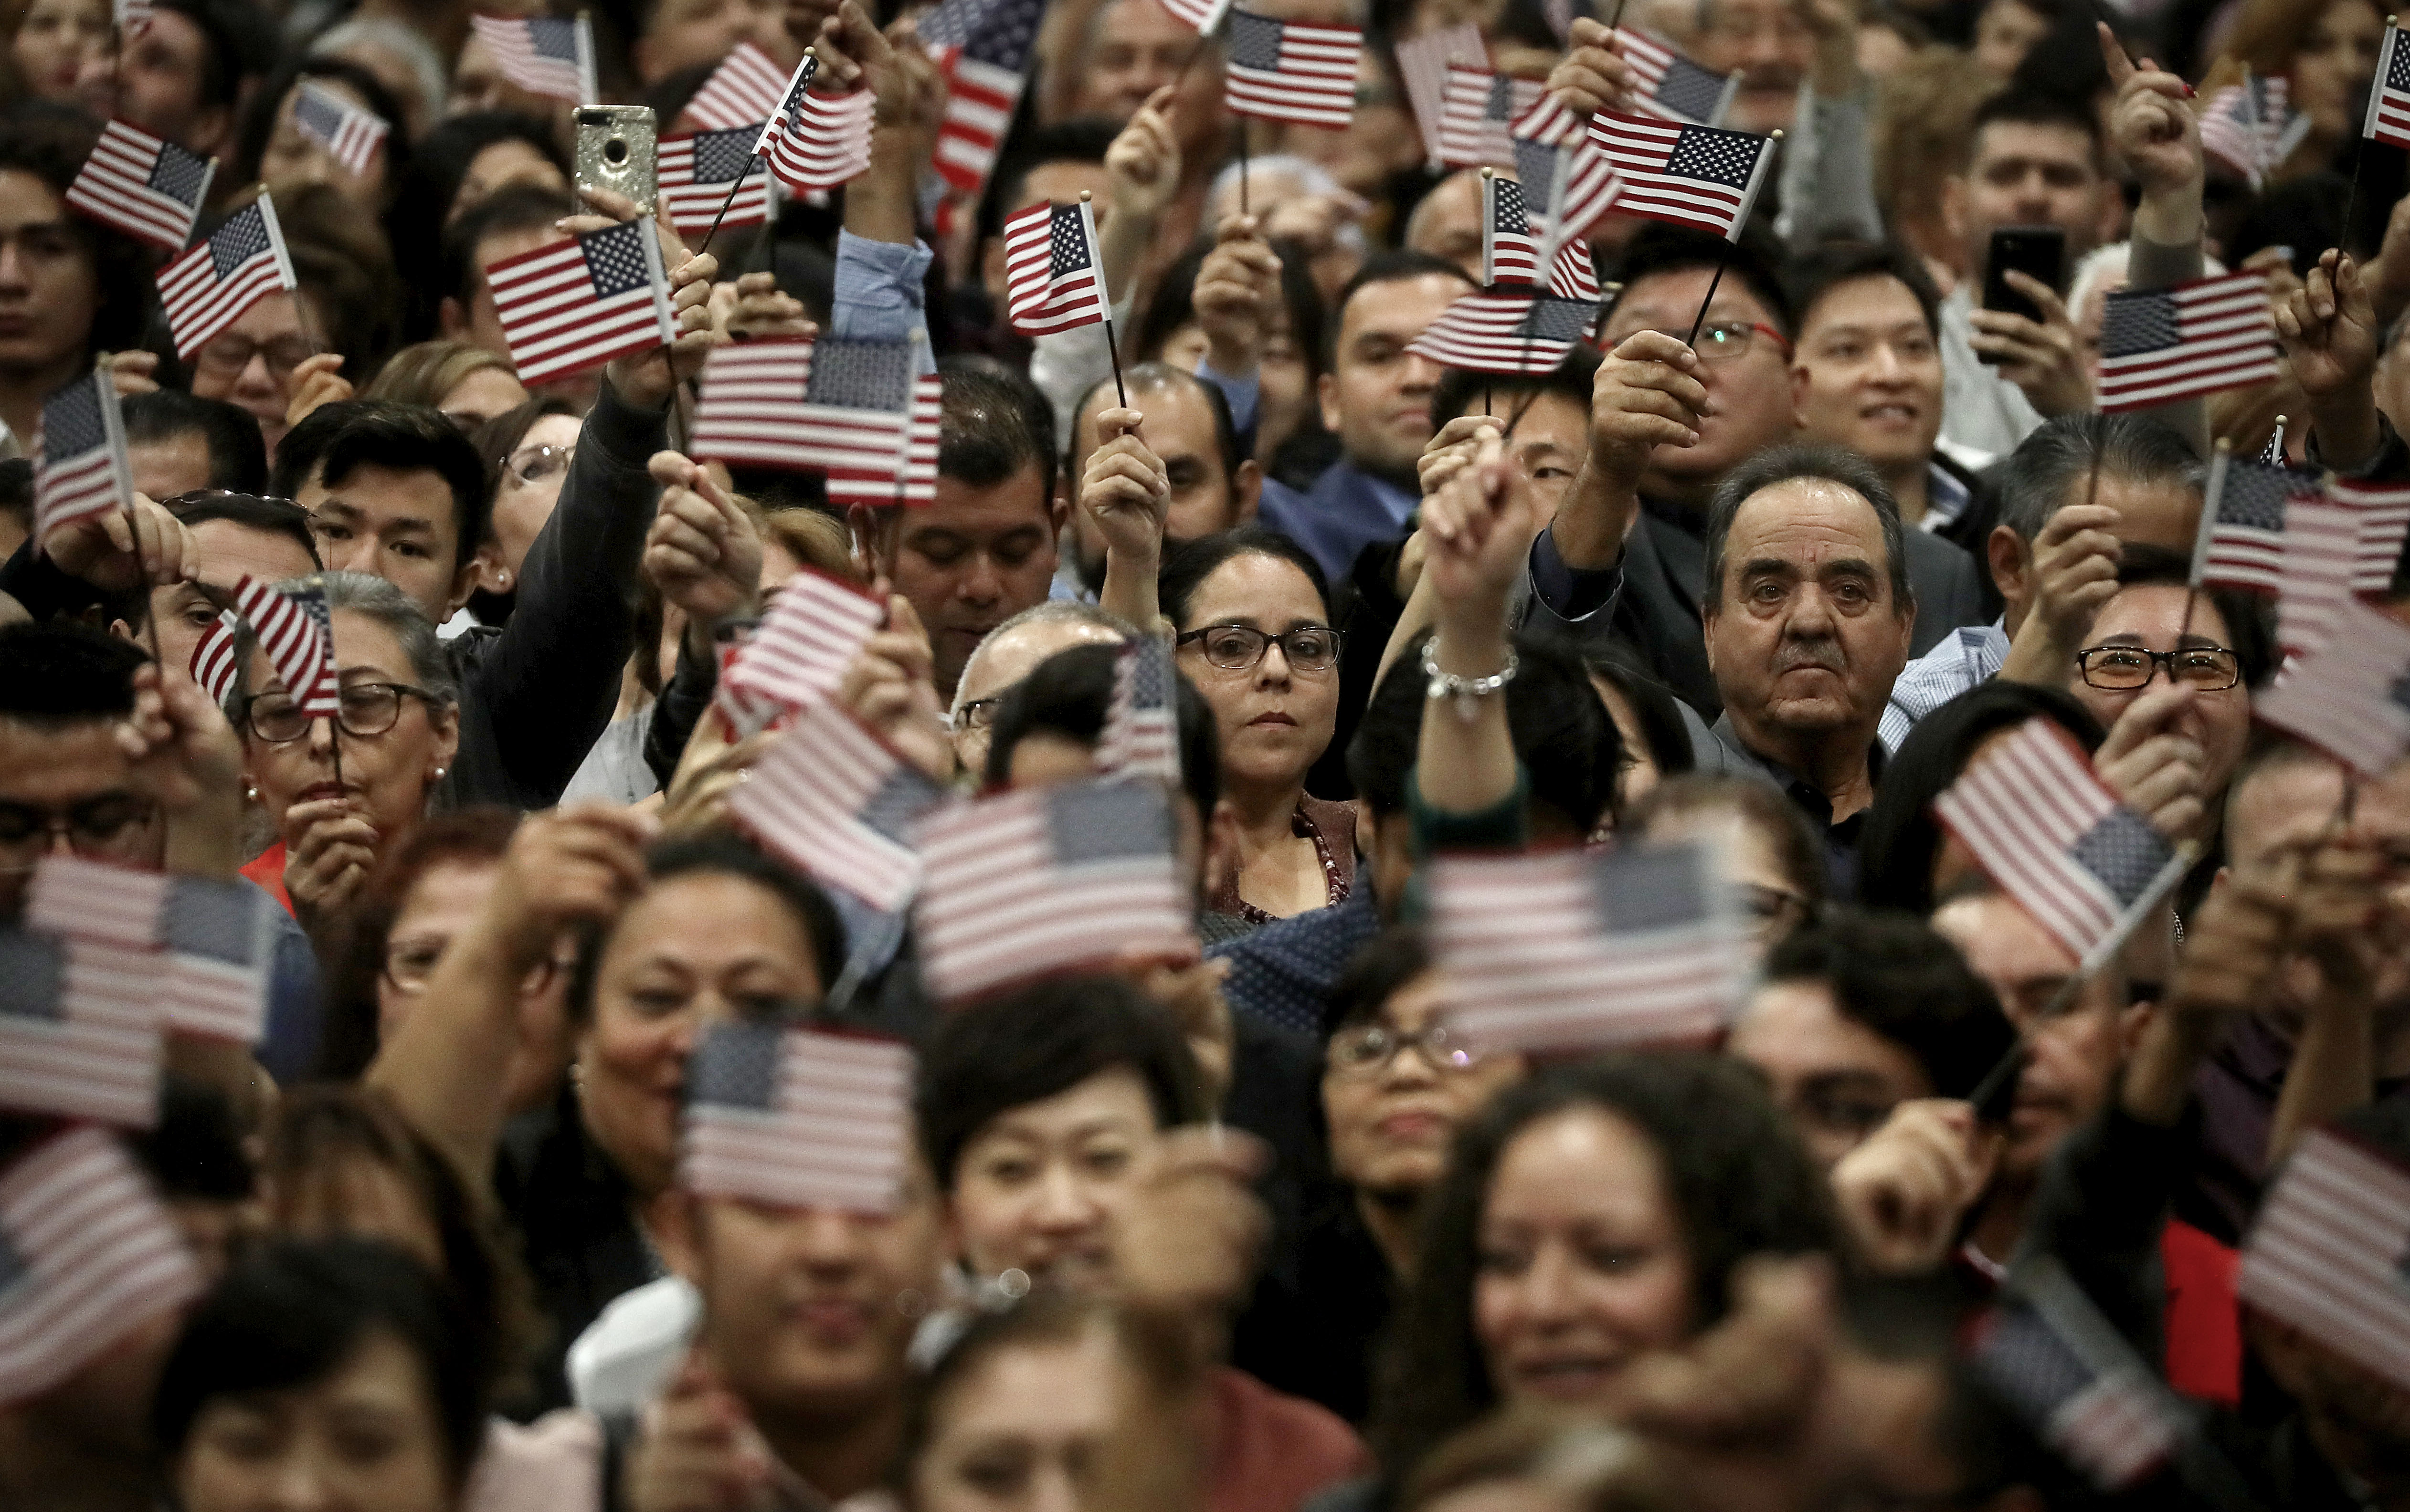 New U.S. citizens wave American flags during a naturalization ceremony on December 19, 2018 in Los Angeles, California. The naturalization ceremony welcomed more than 6,000 immigrants from over 100 countries who took the citizenship oath and pledged allegiance to the American flag. (Mario Tama/Getty Images)